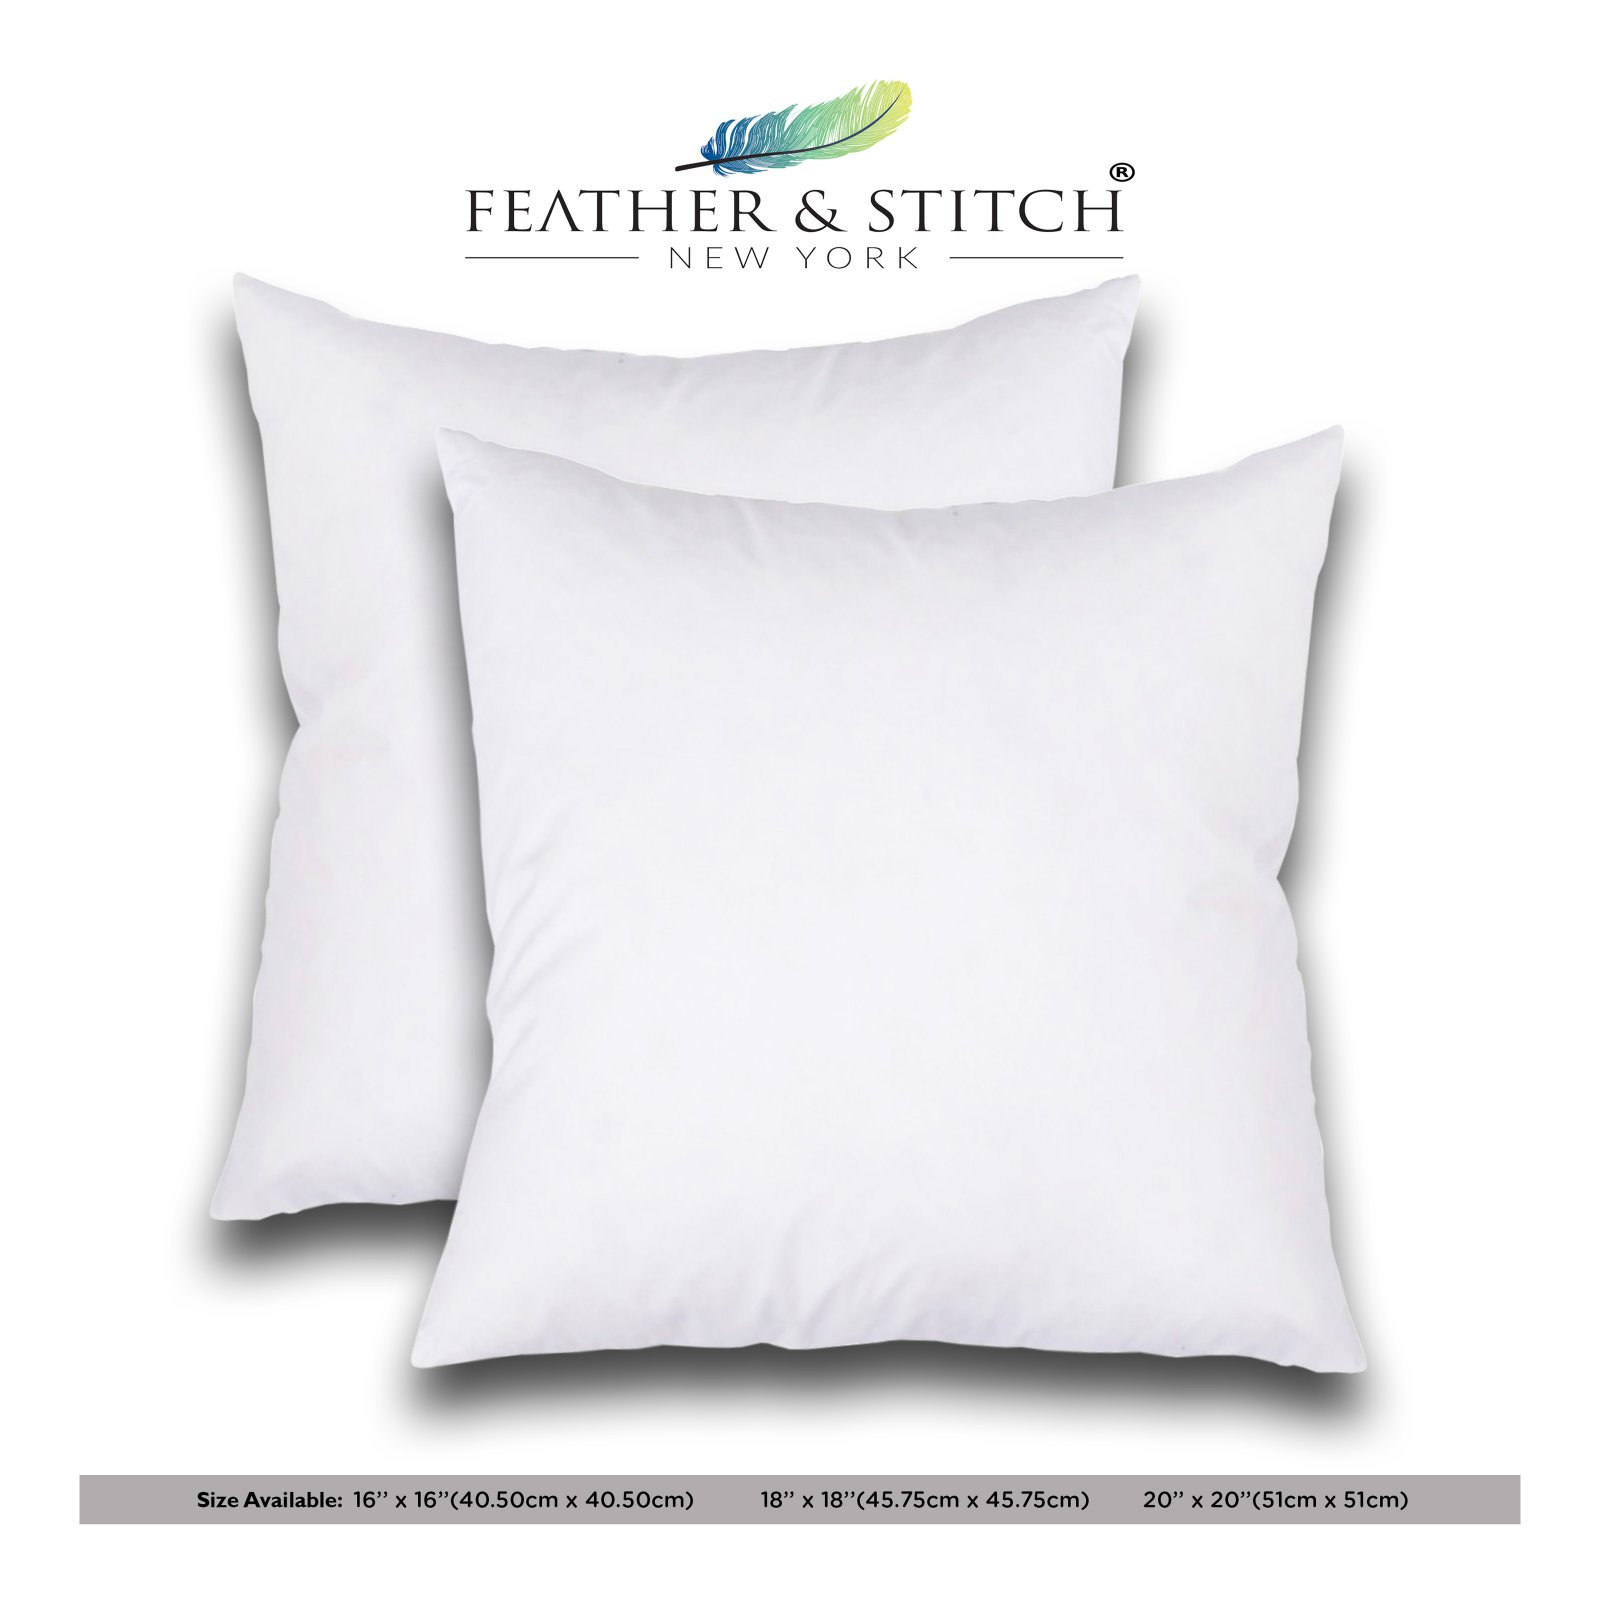 set of 2 decorative pillow inserts square pillow 16x16 inches sofa and bed pillow inserts throw pillow insert white